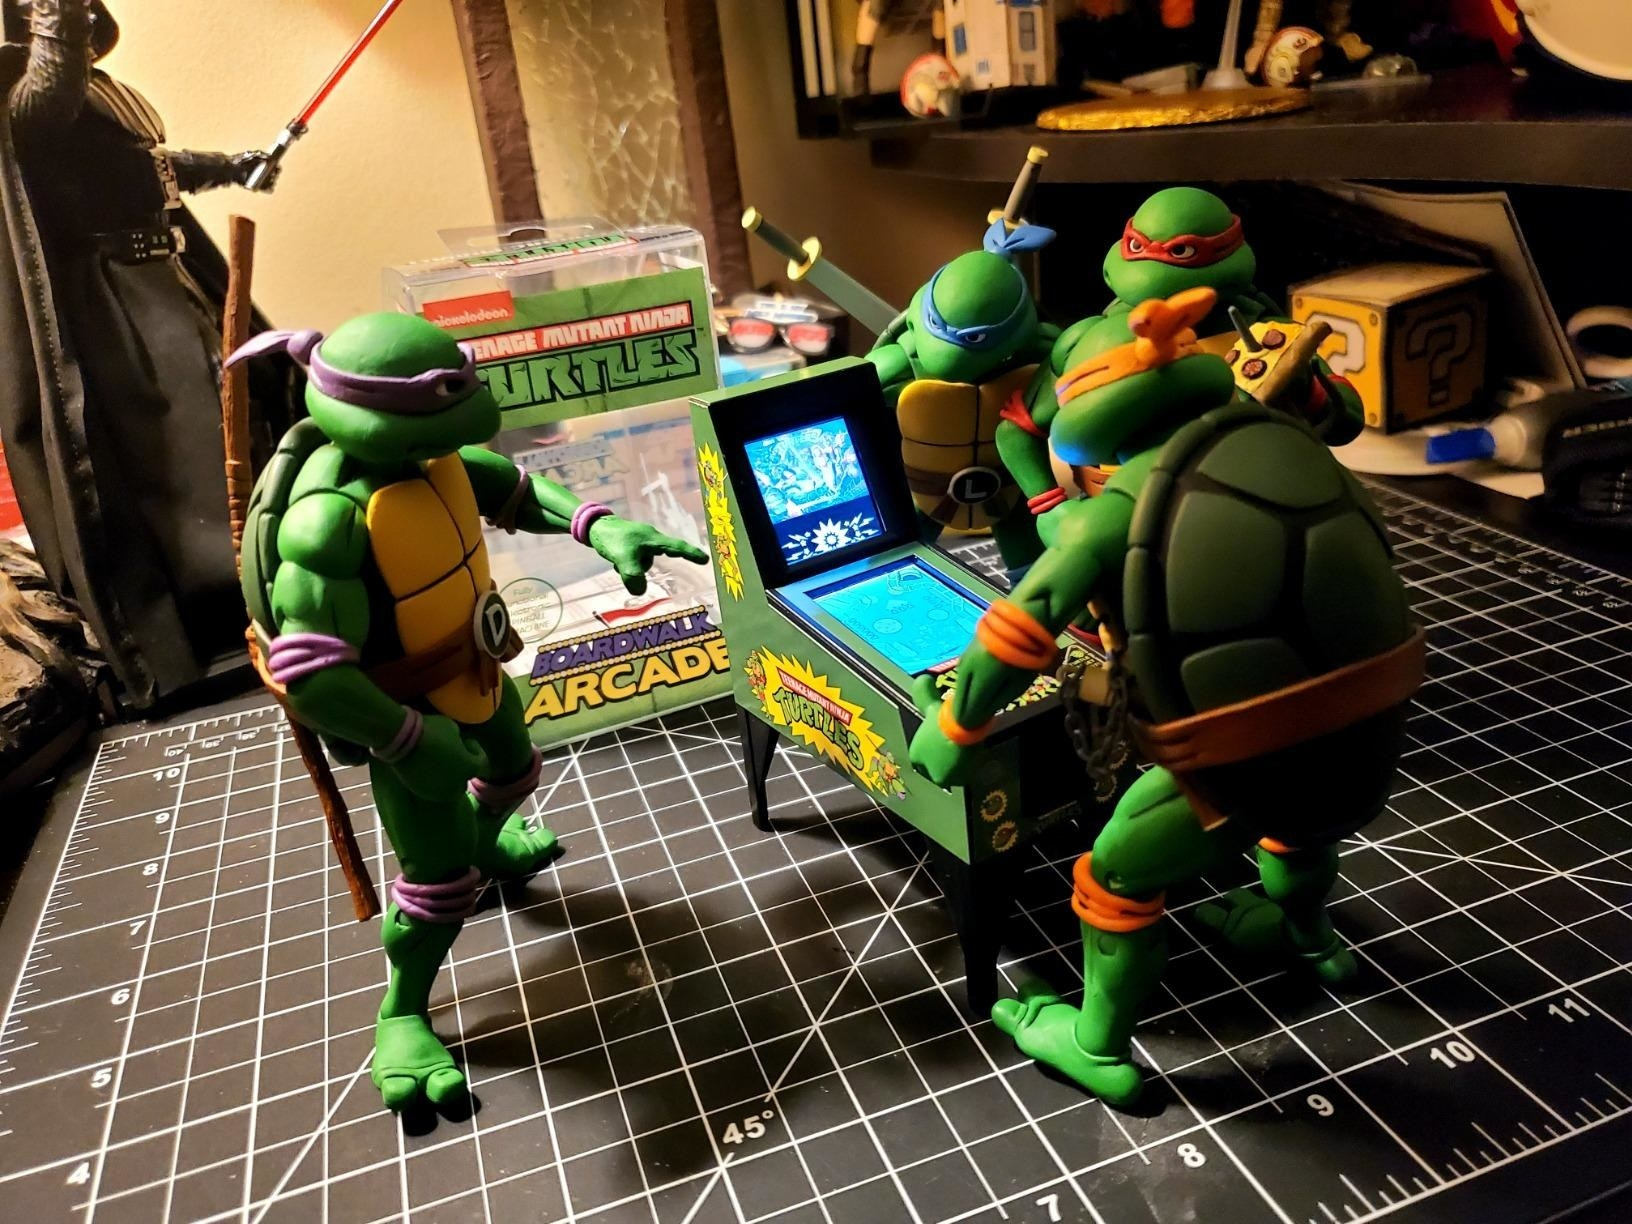 a reviewer image of ninja turtle figures playing with the mini pinball machine